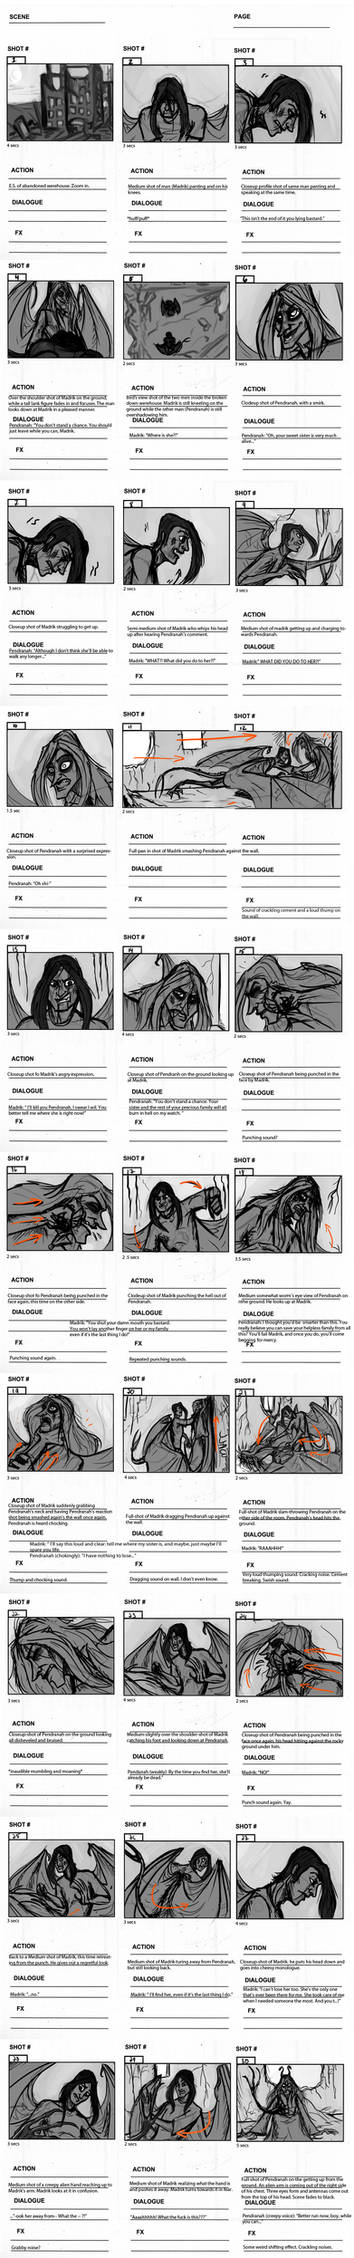 Storyboard Project 4 -- Action